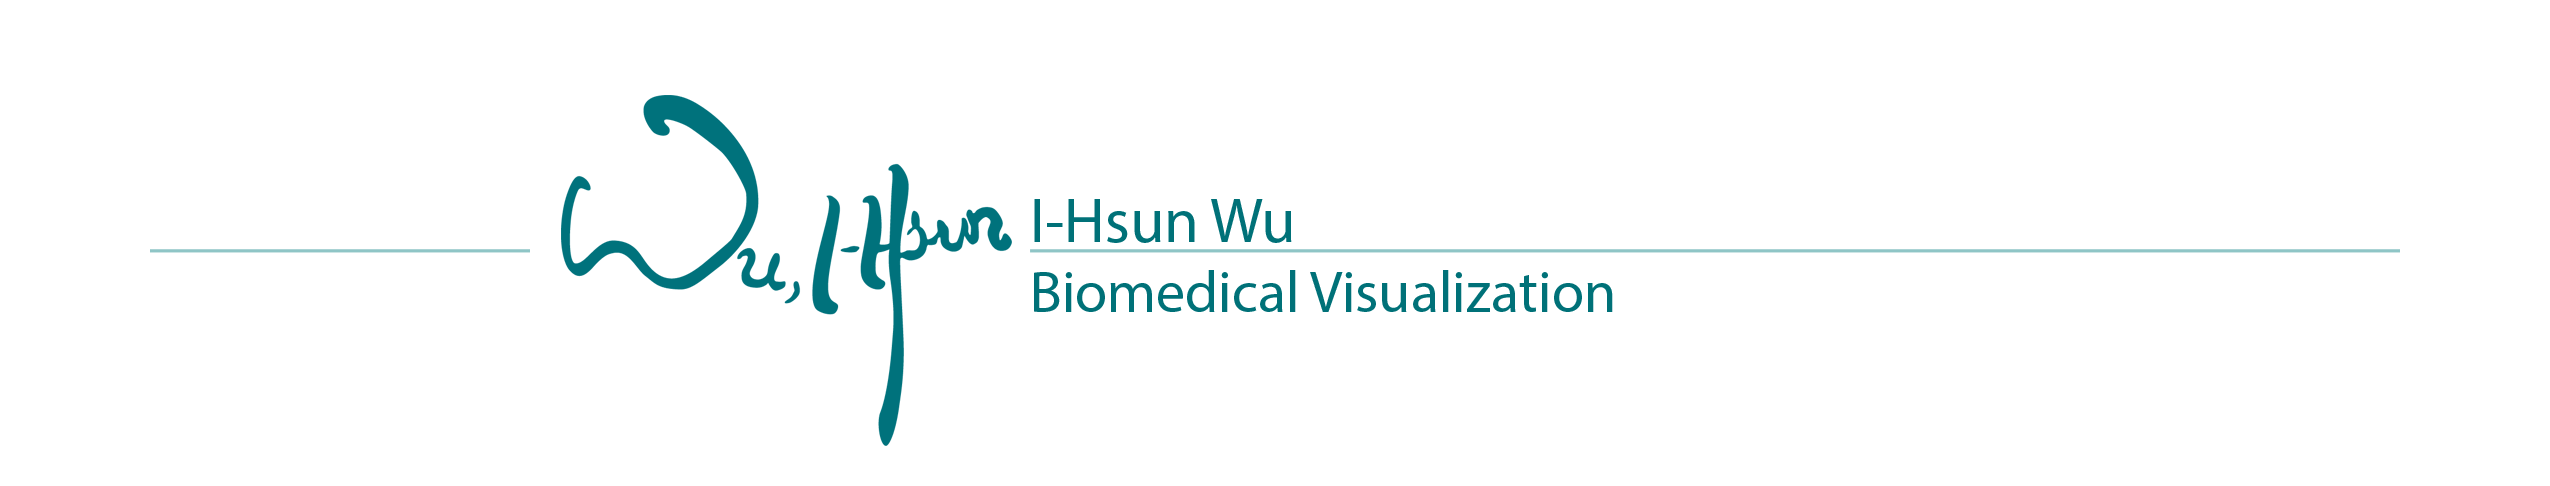 I-Hsun Wu Biomedical Visualization